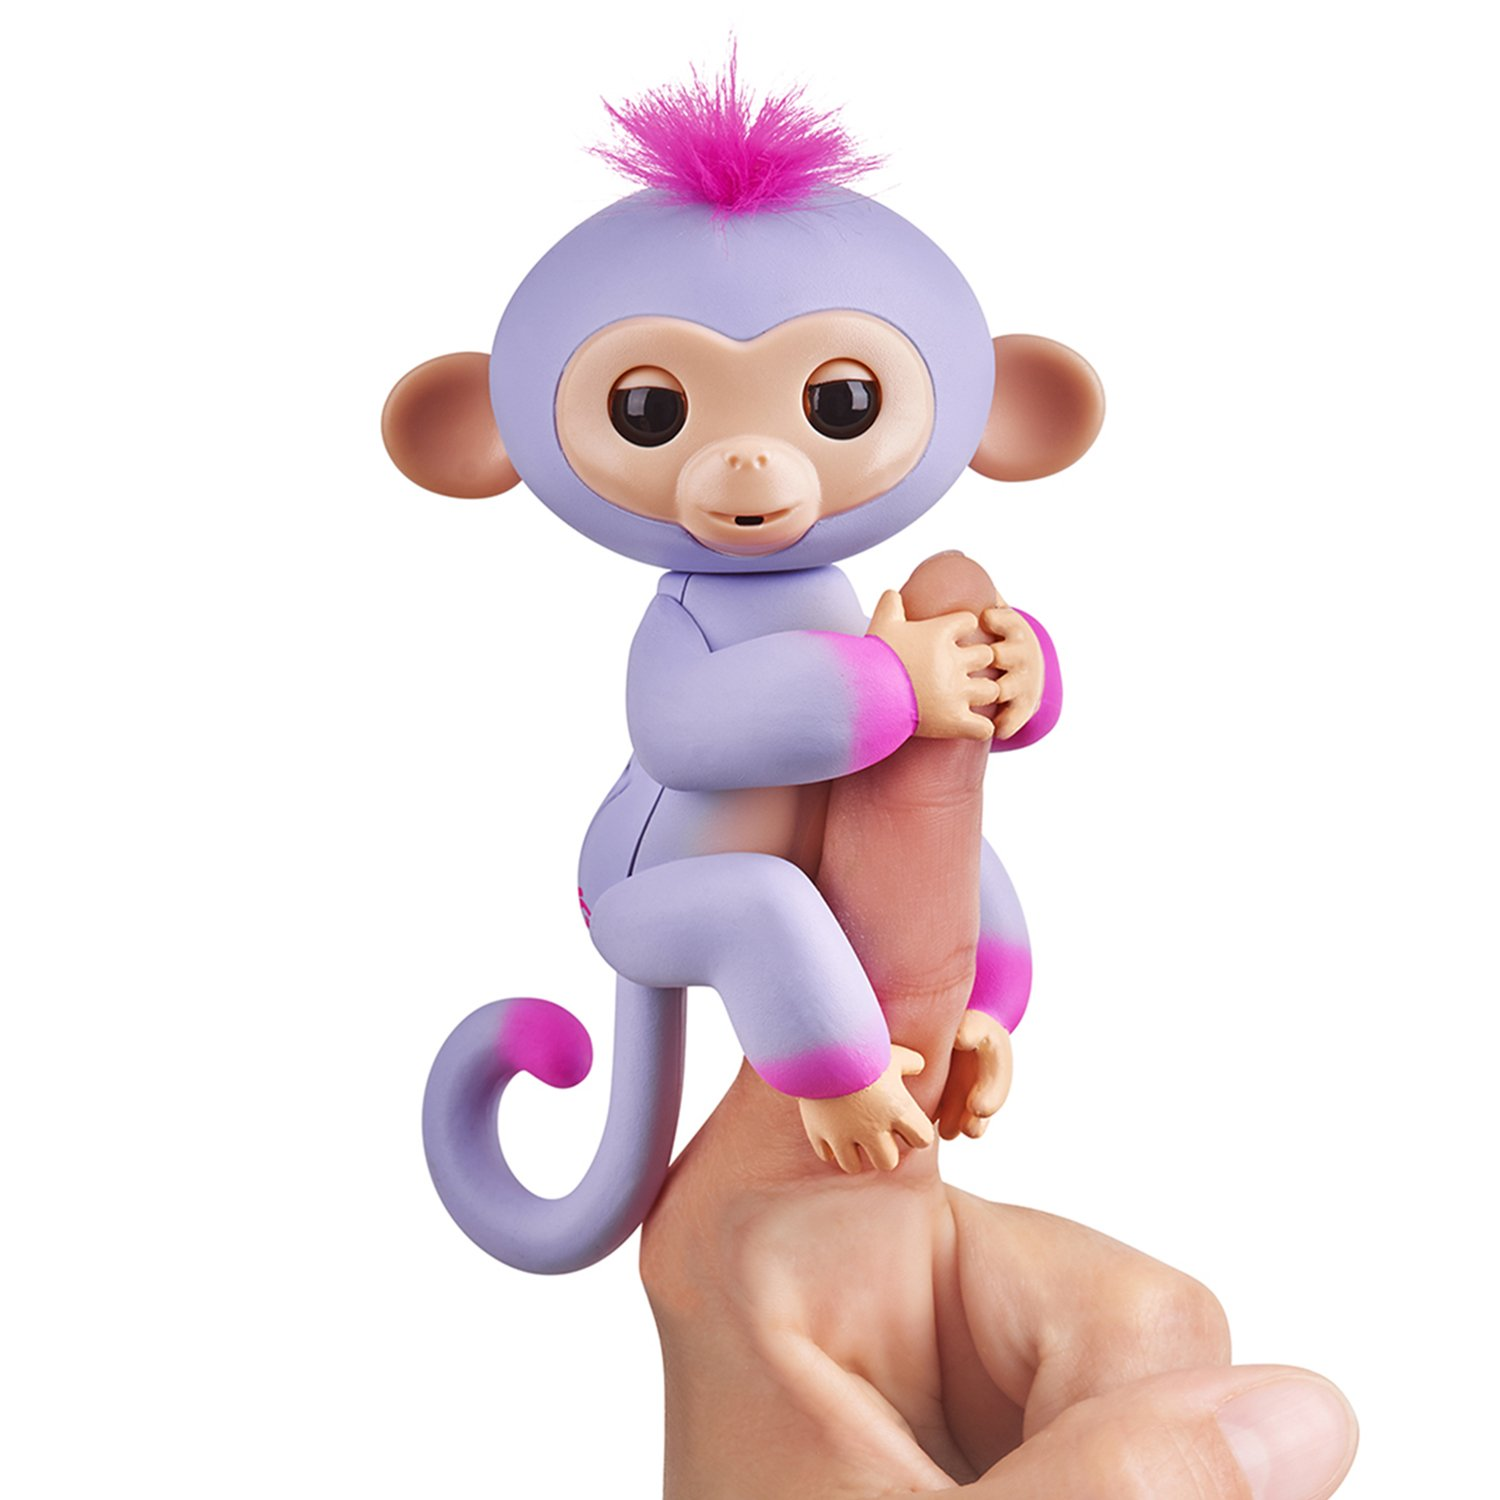 Fingerlings 2Tone Monkey - Sydney (Purple Pink Accents) - Interactive Baby Pet WowWee 3721